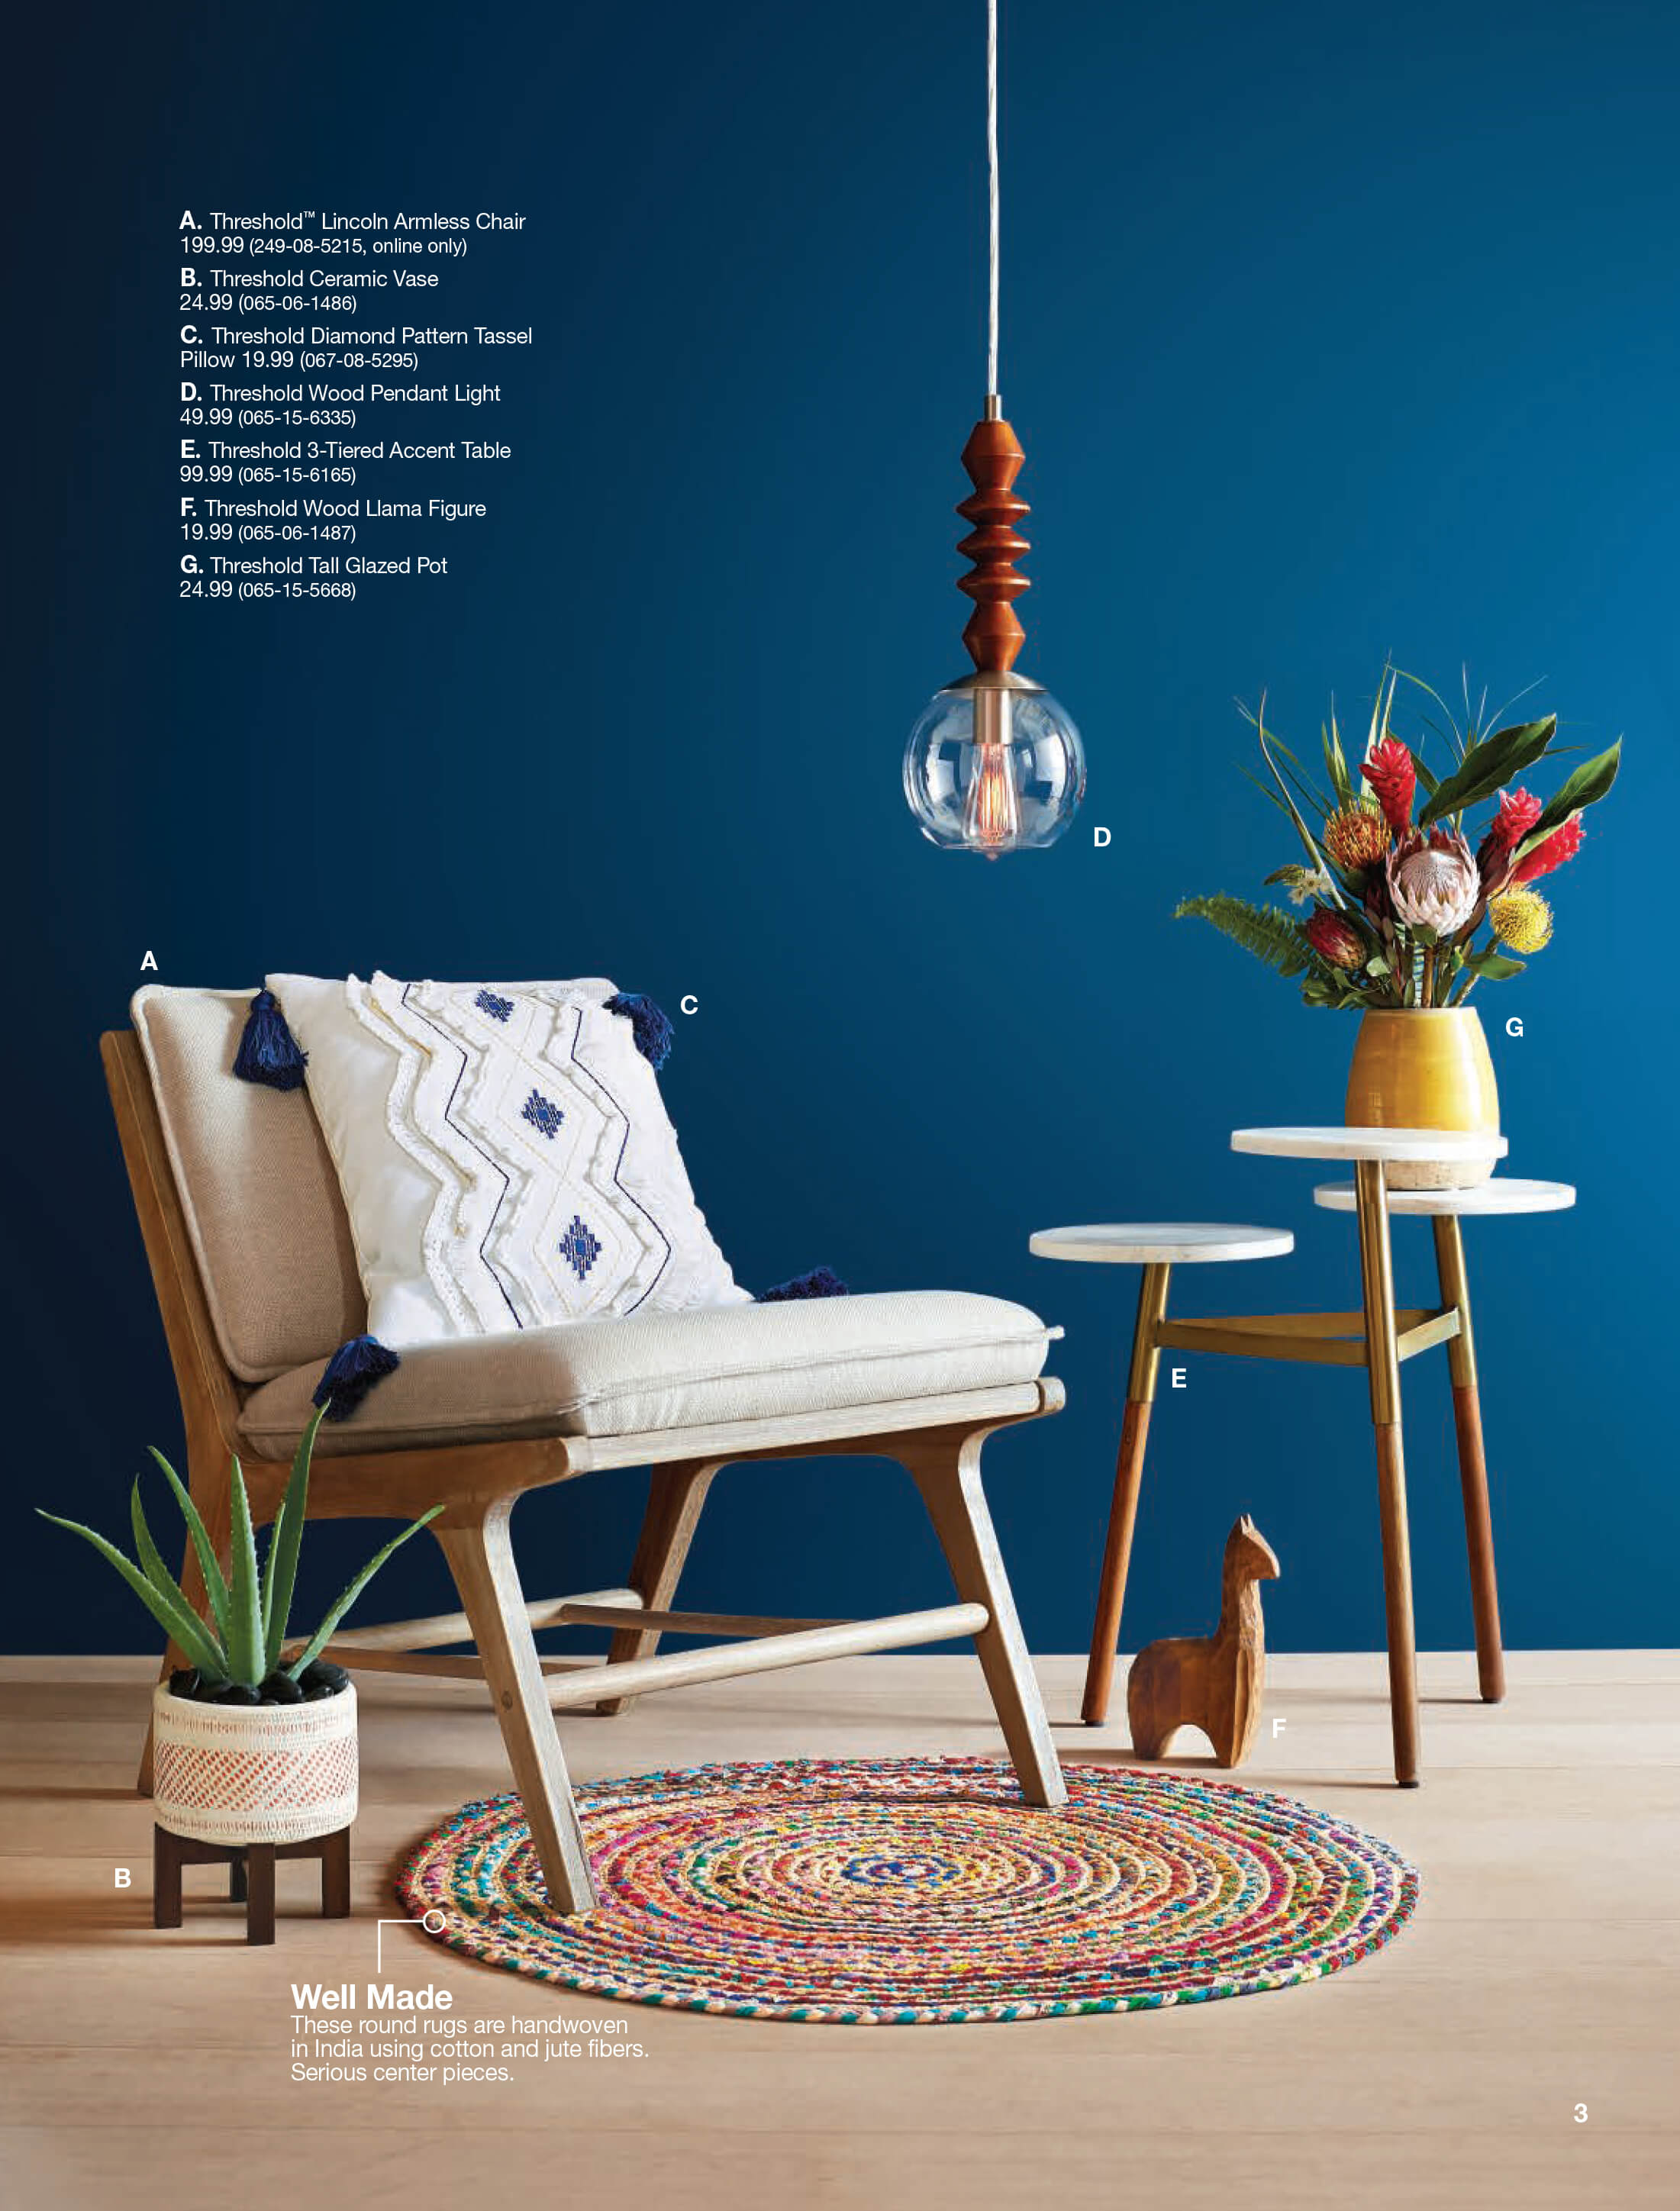 new target home product and emily henderson first look spring catalog tall accent table black makeup desk white metal end cherry coffee patio set with umbrella decor design small